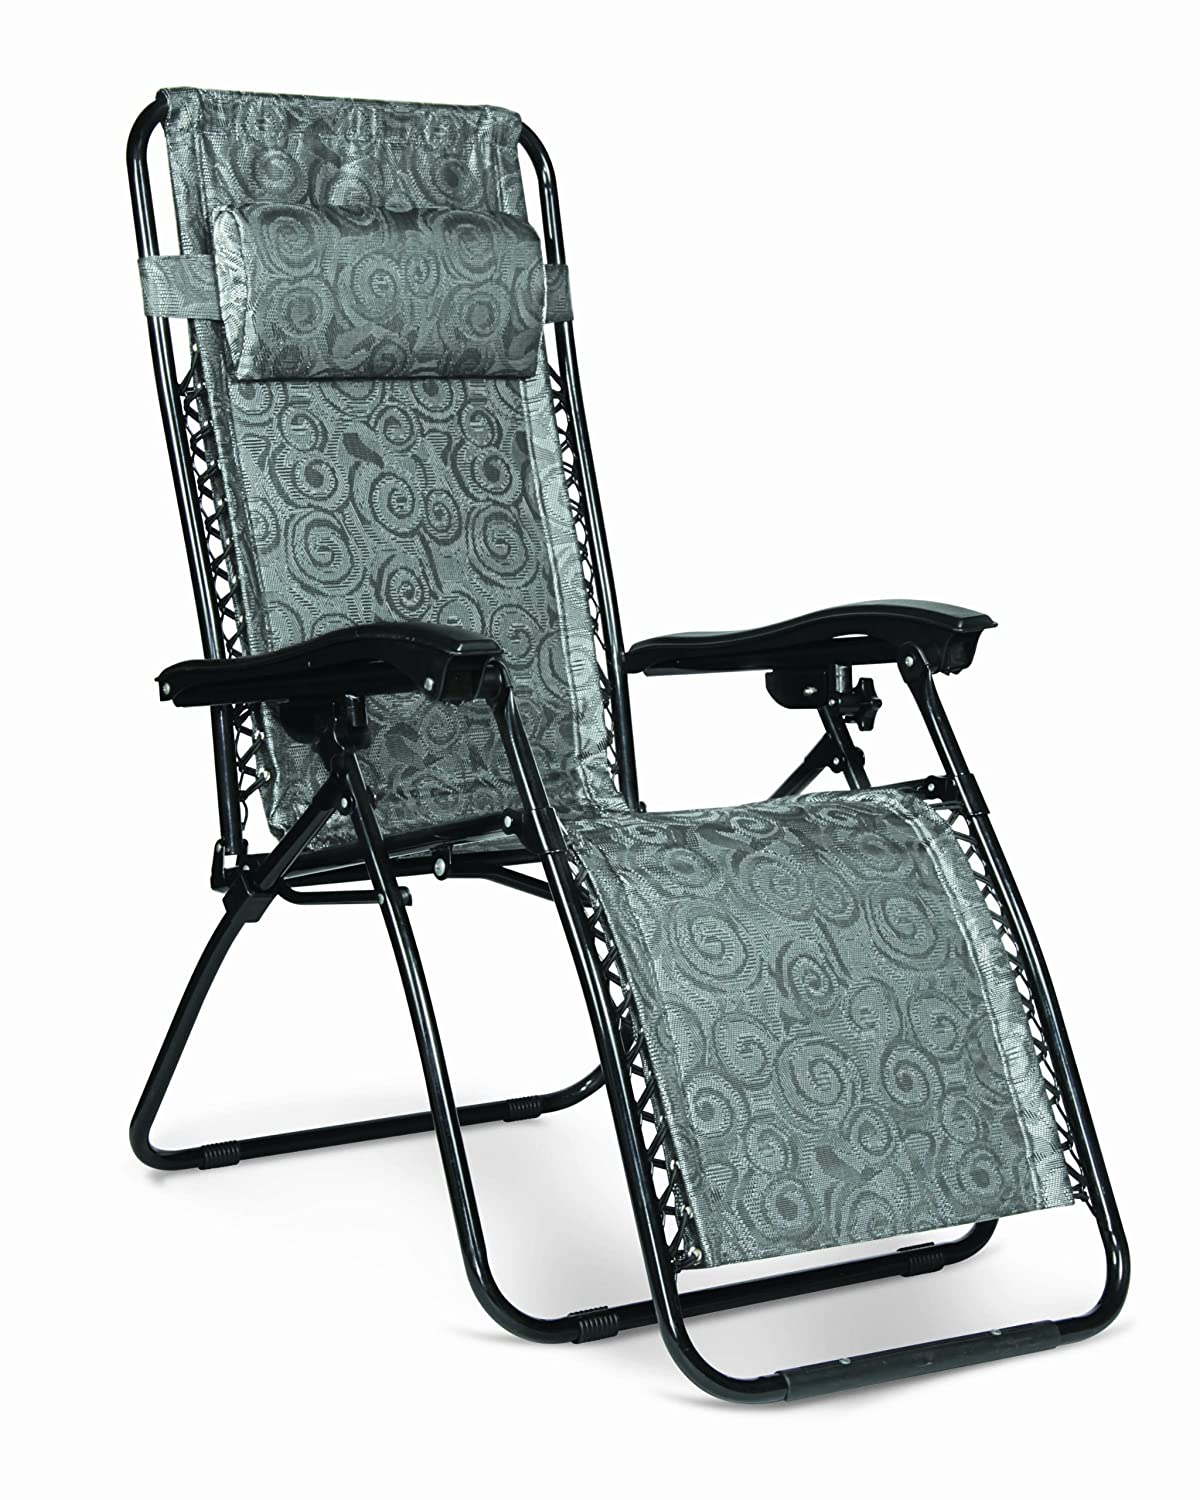 Camco 51810 Black Swirl Zero Gravity Recliner $37.99